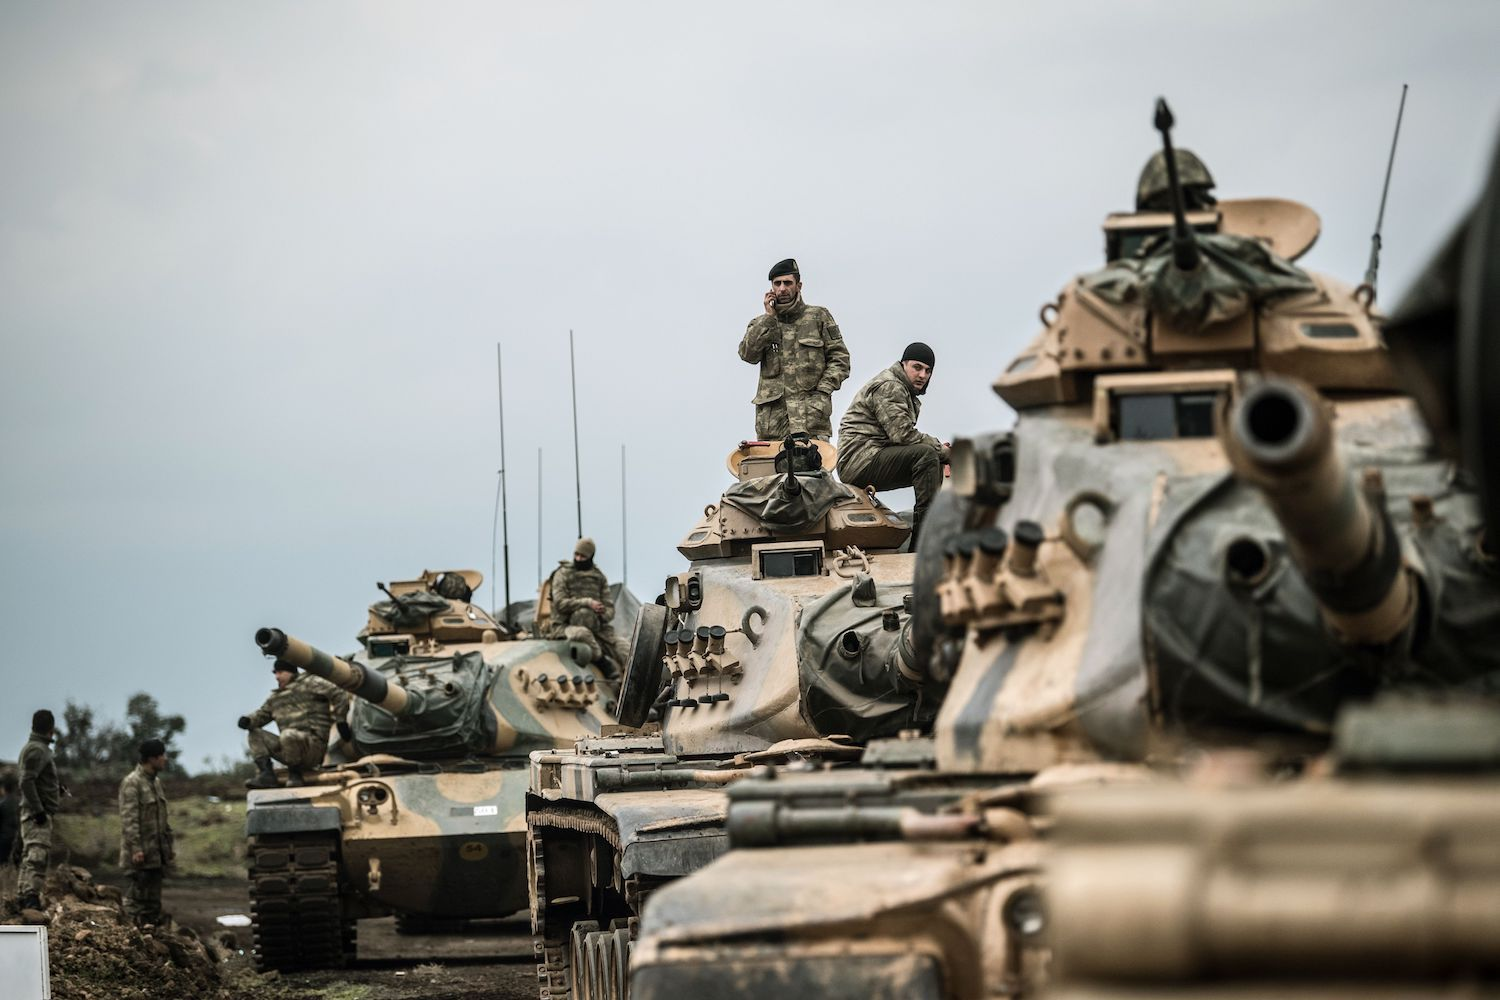 Turkish Forces Continue To Establish Military Posts In Southern Idlib, Planning To Patrol Syrian Region